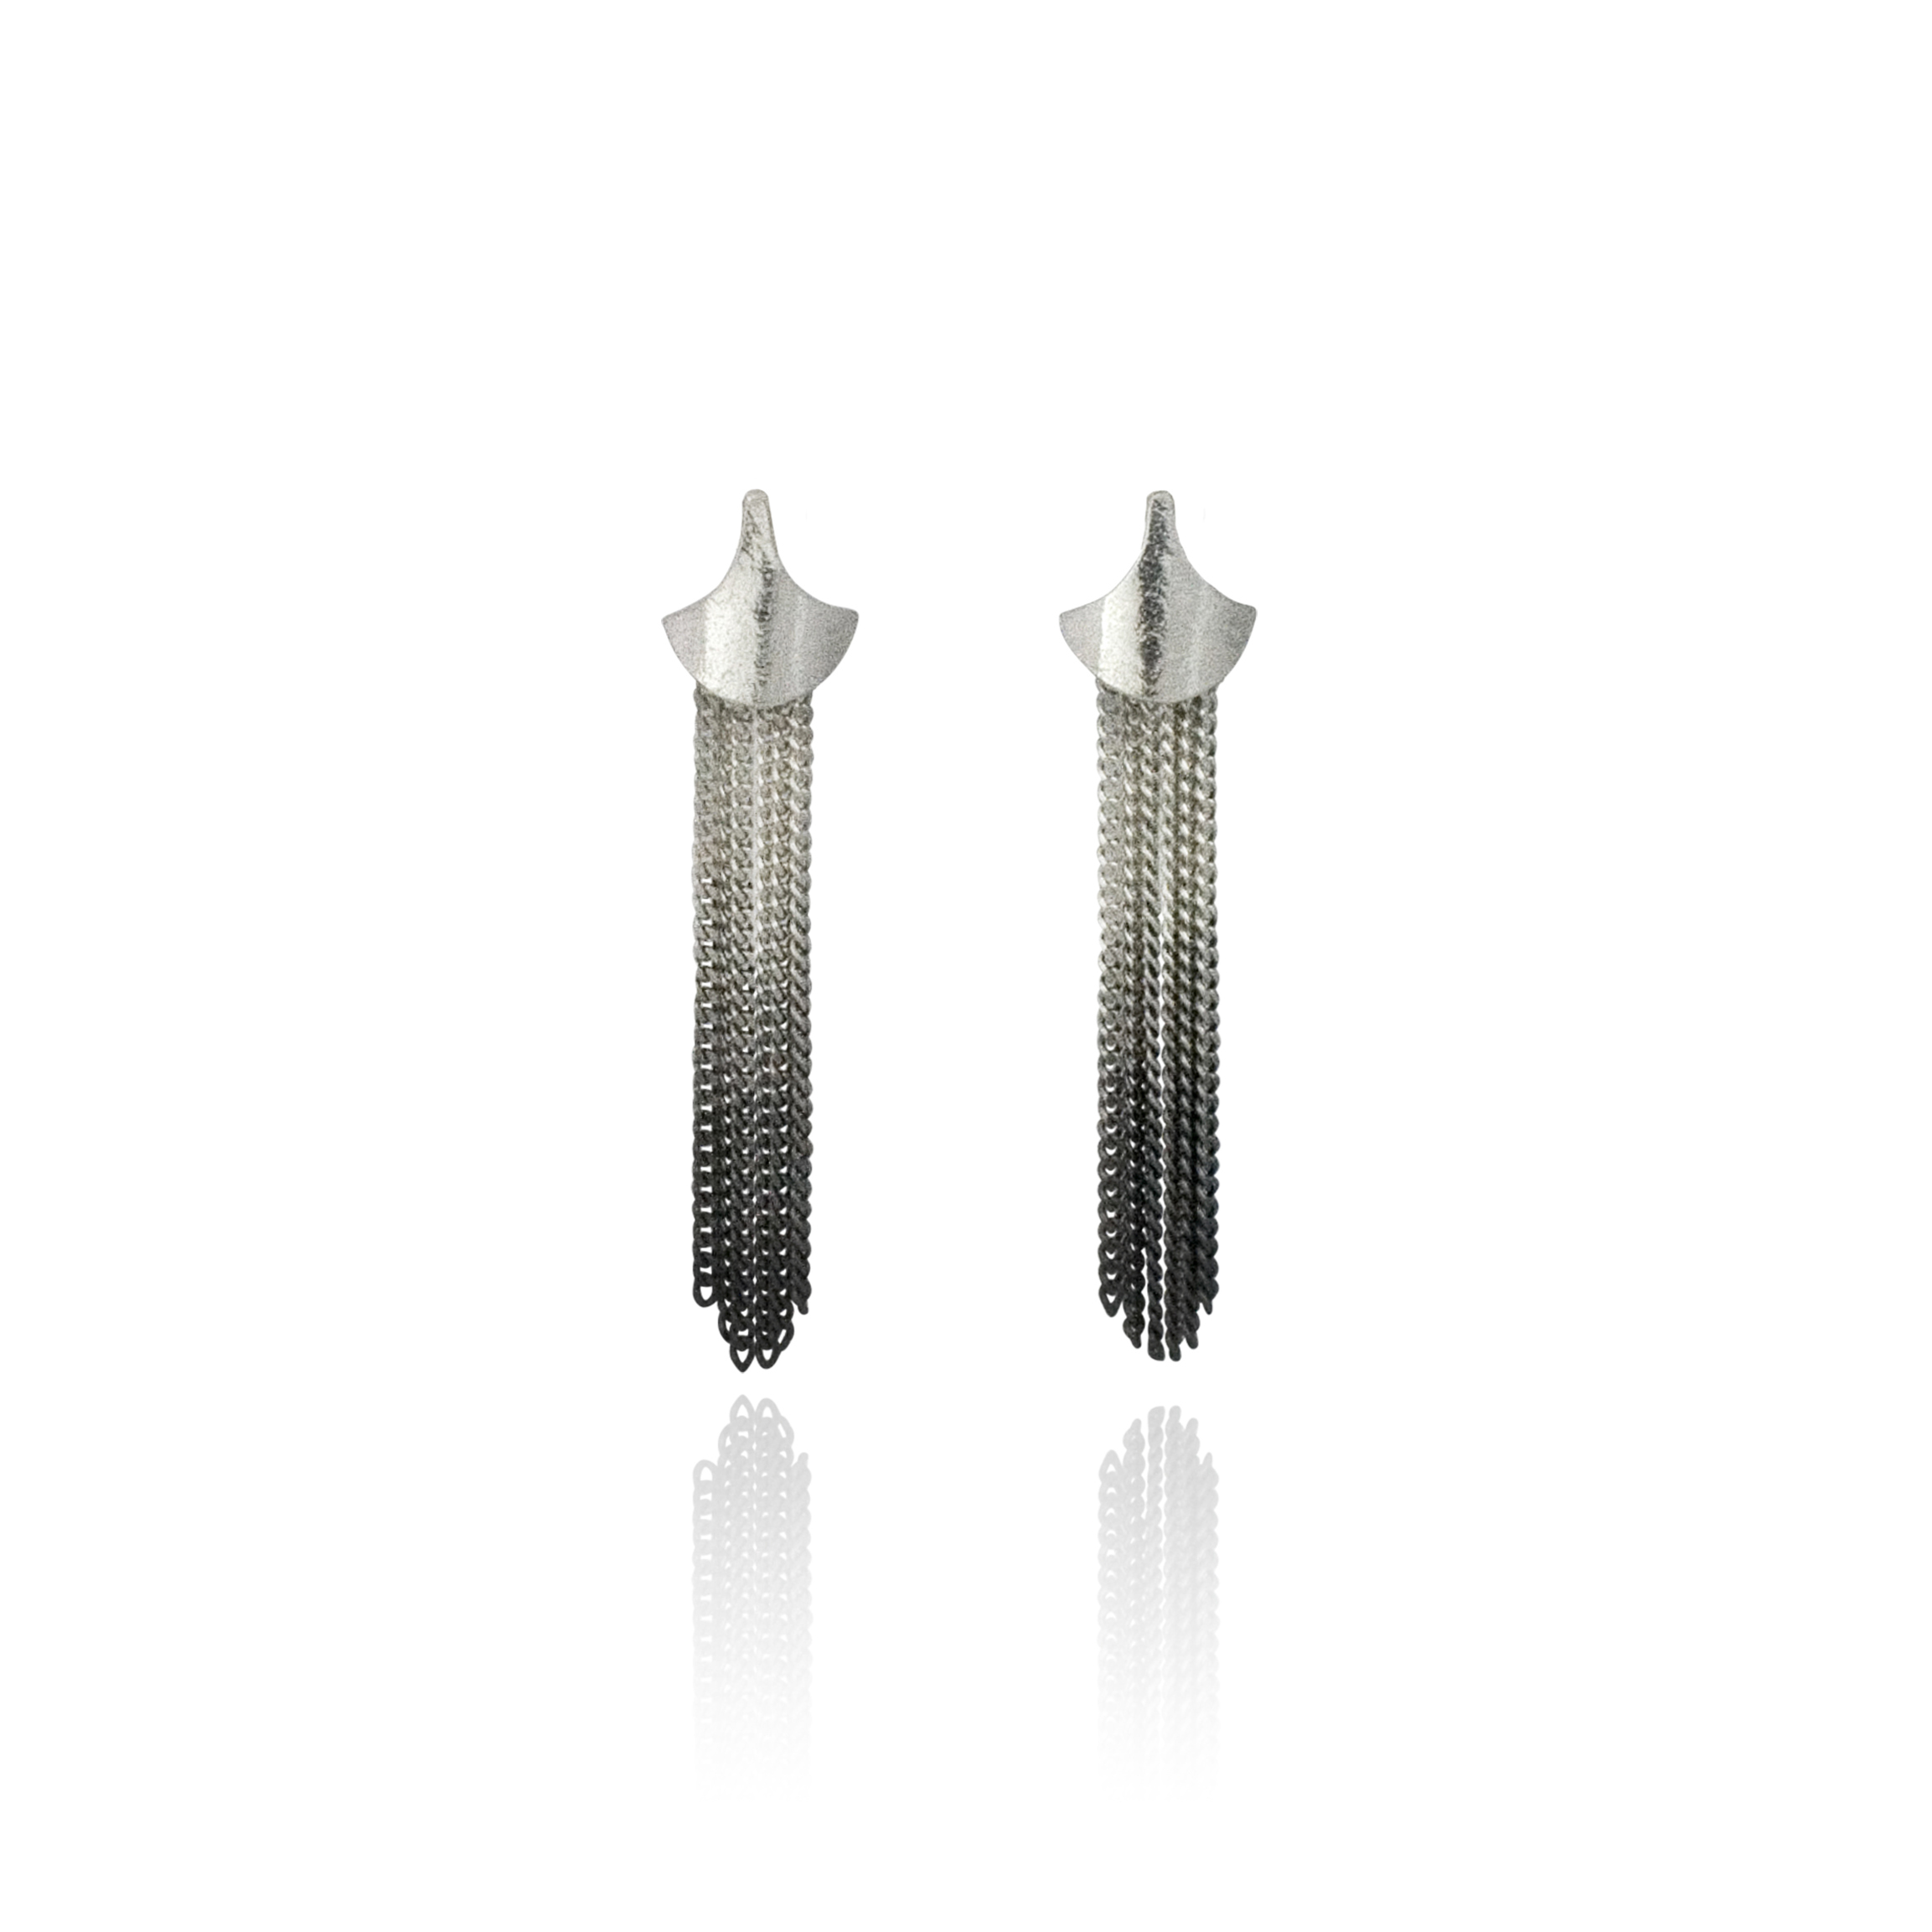 Cara Tonkin Black Silver Siren Tassel/Stud Earrings